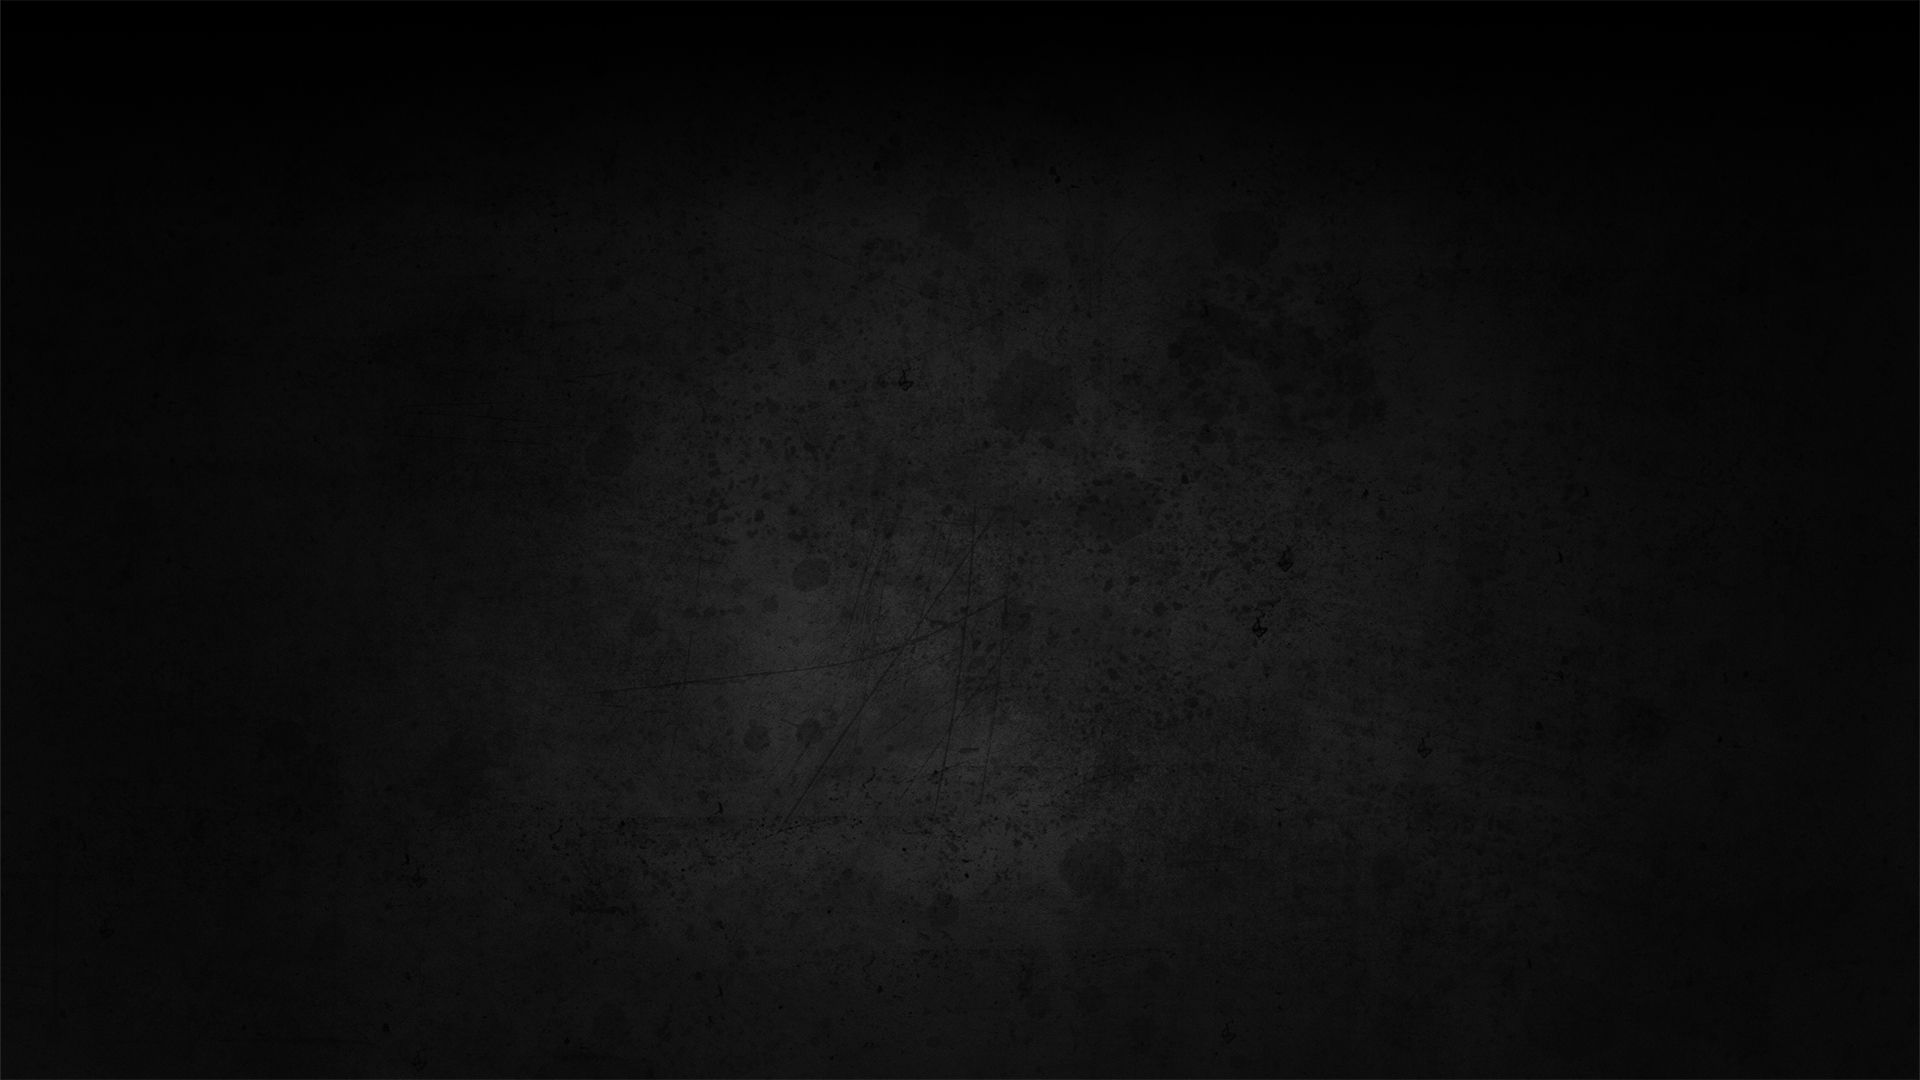 Plain Black Wallpapers 22 Images Wallpaperboat